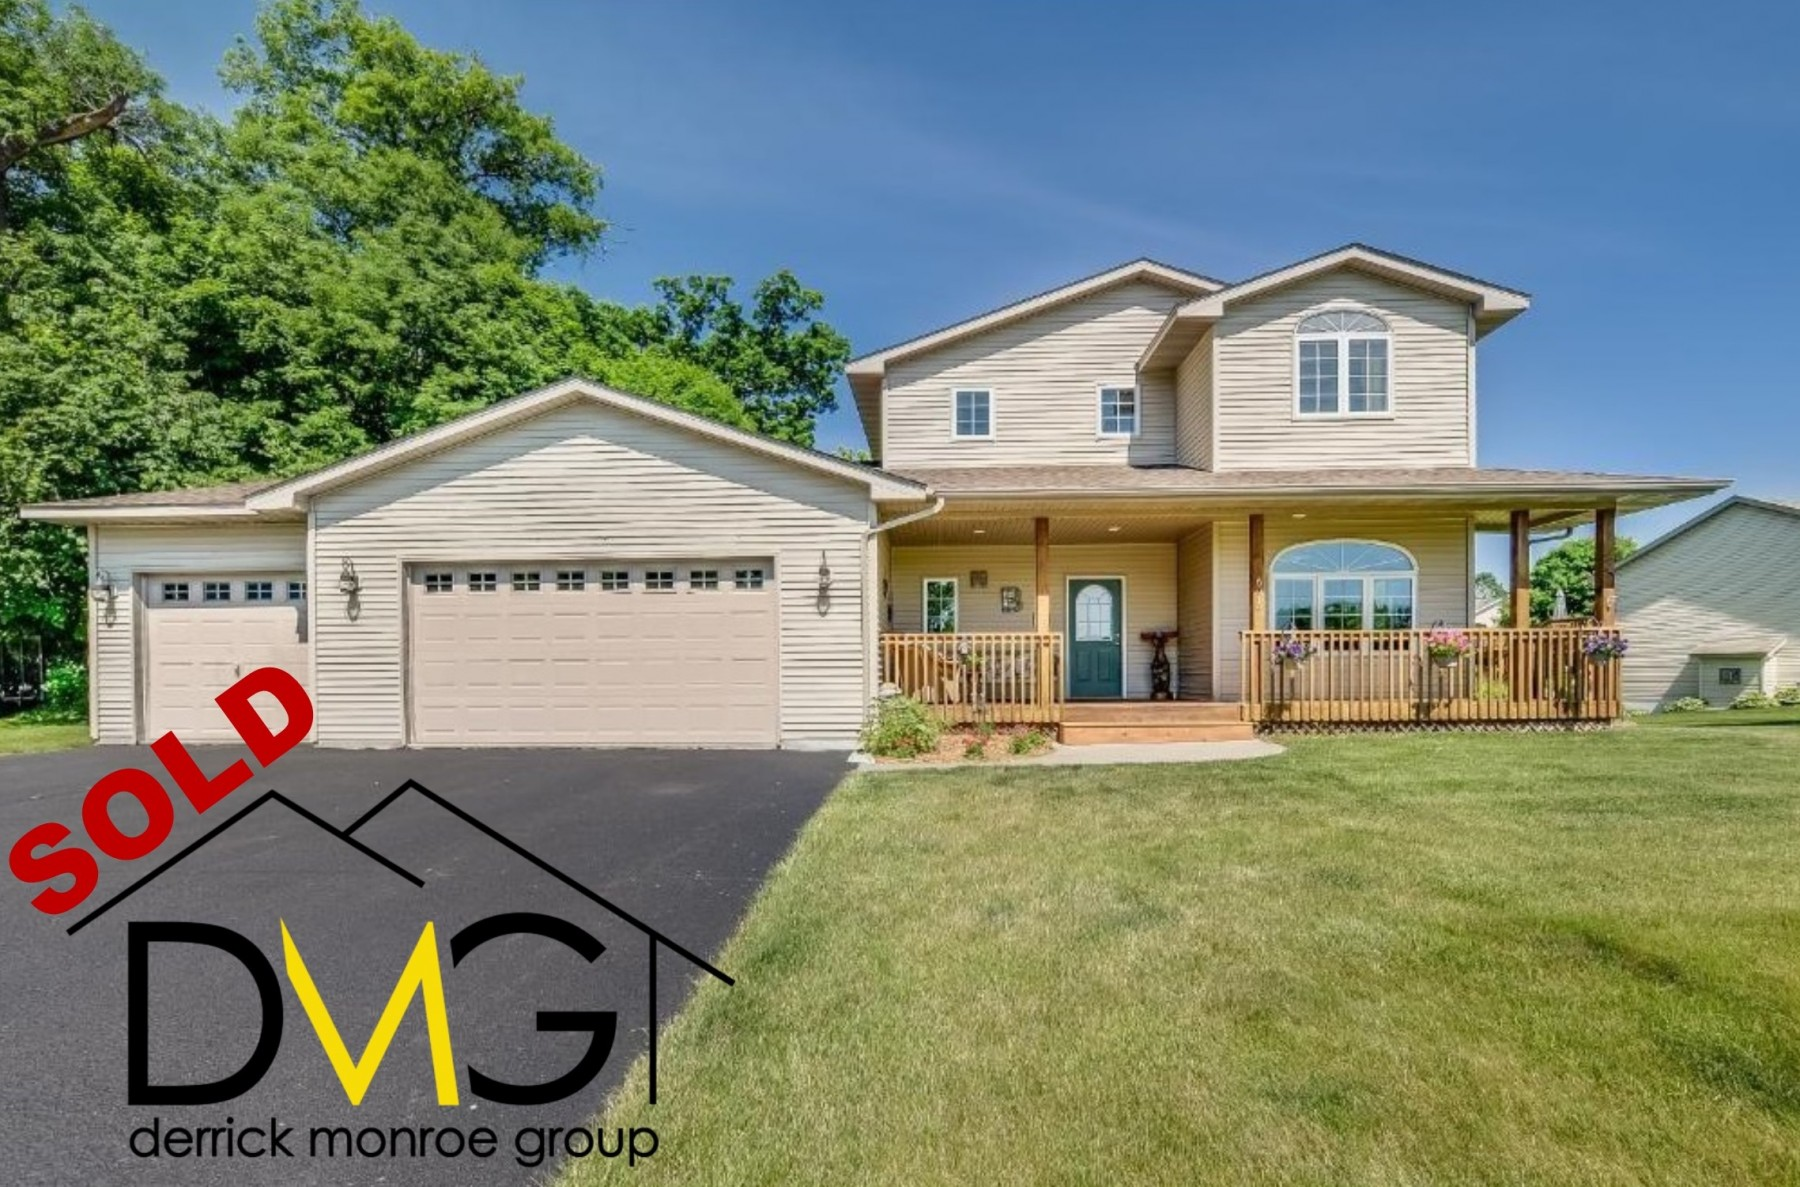 rockford realtor sold home